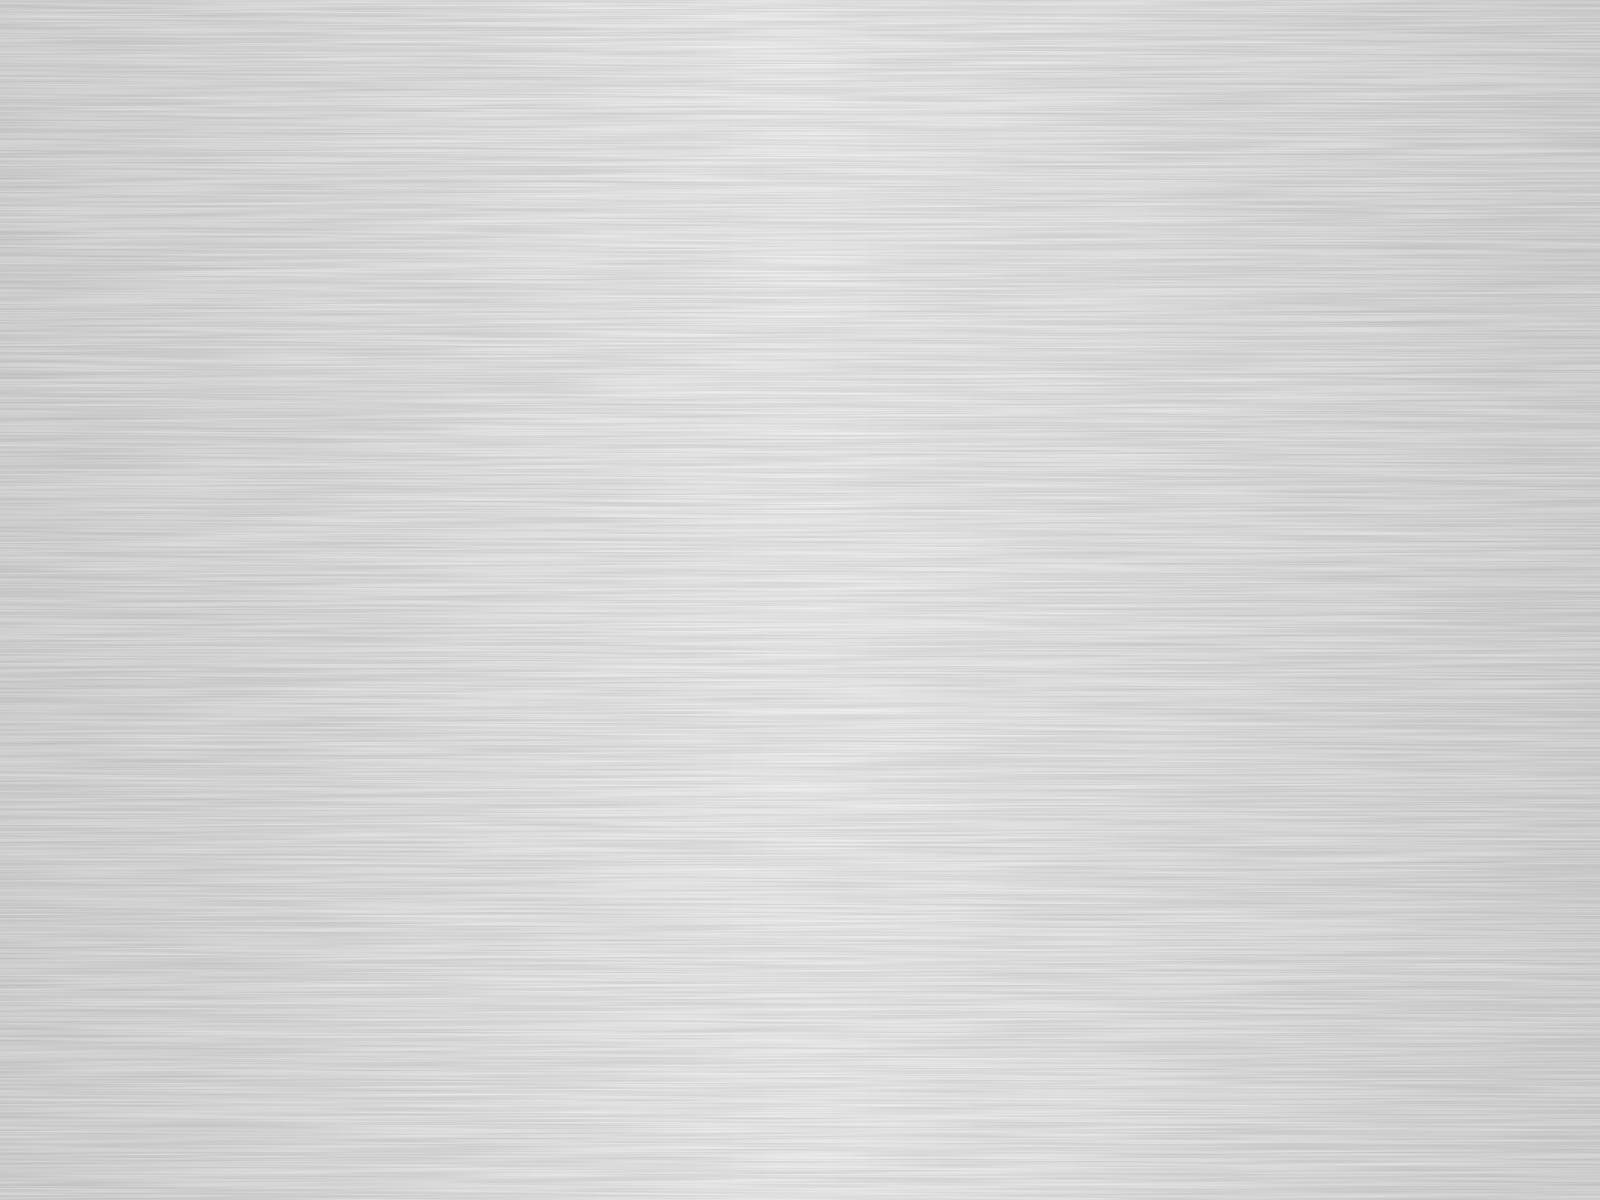 Silver Background Hd Posted By Samantha Mercado